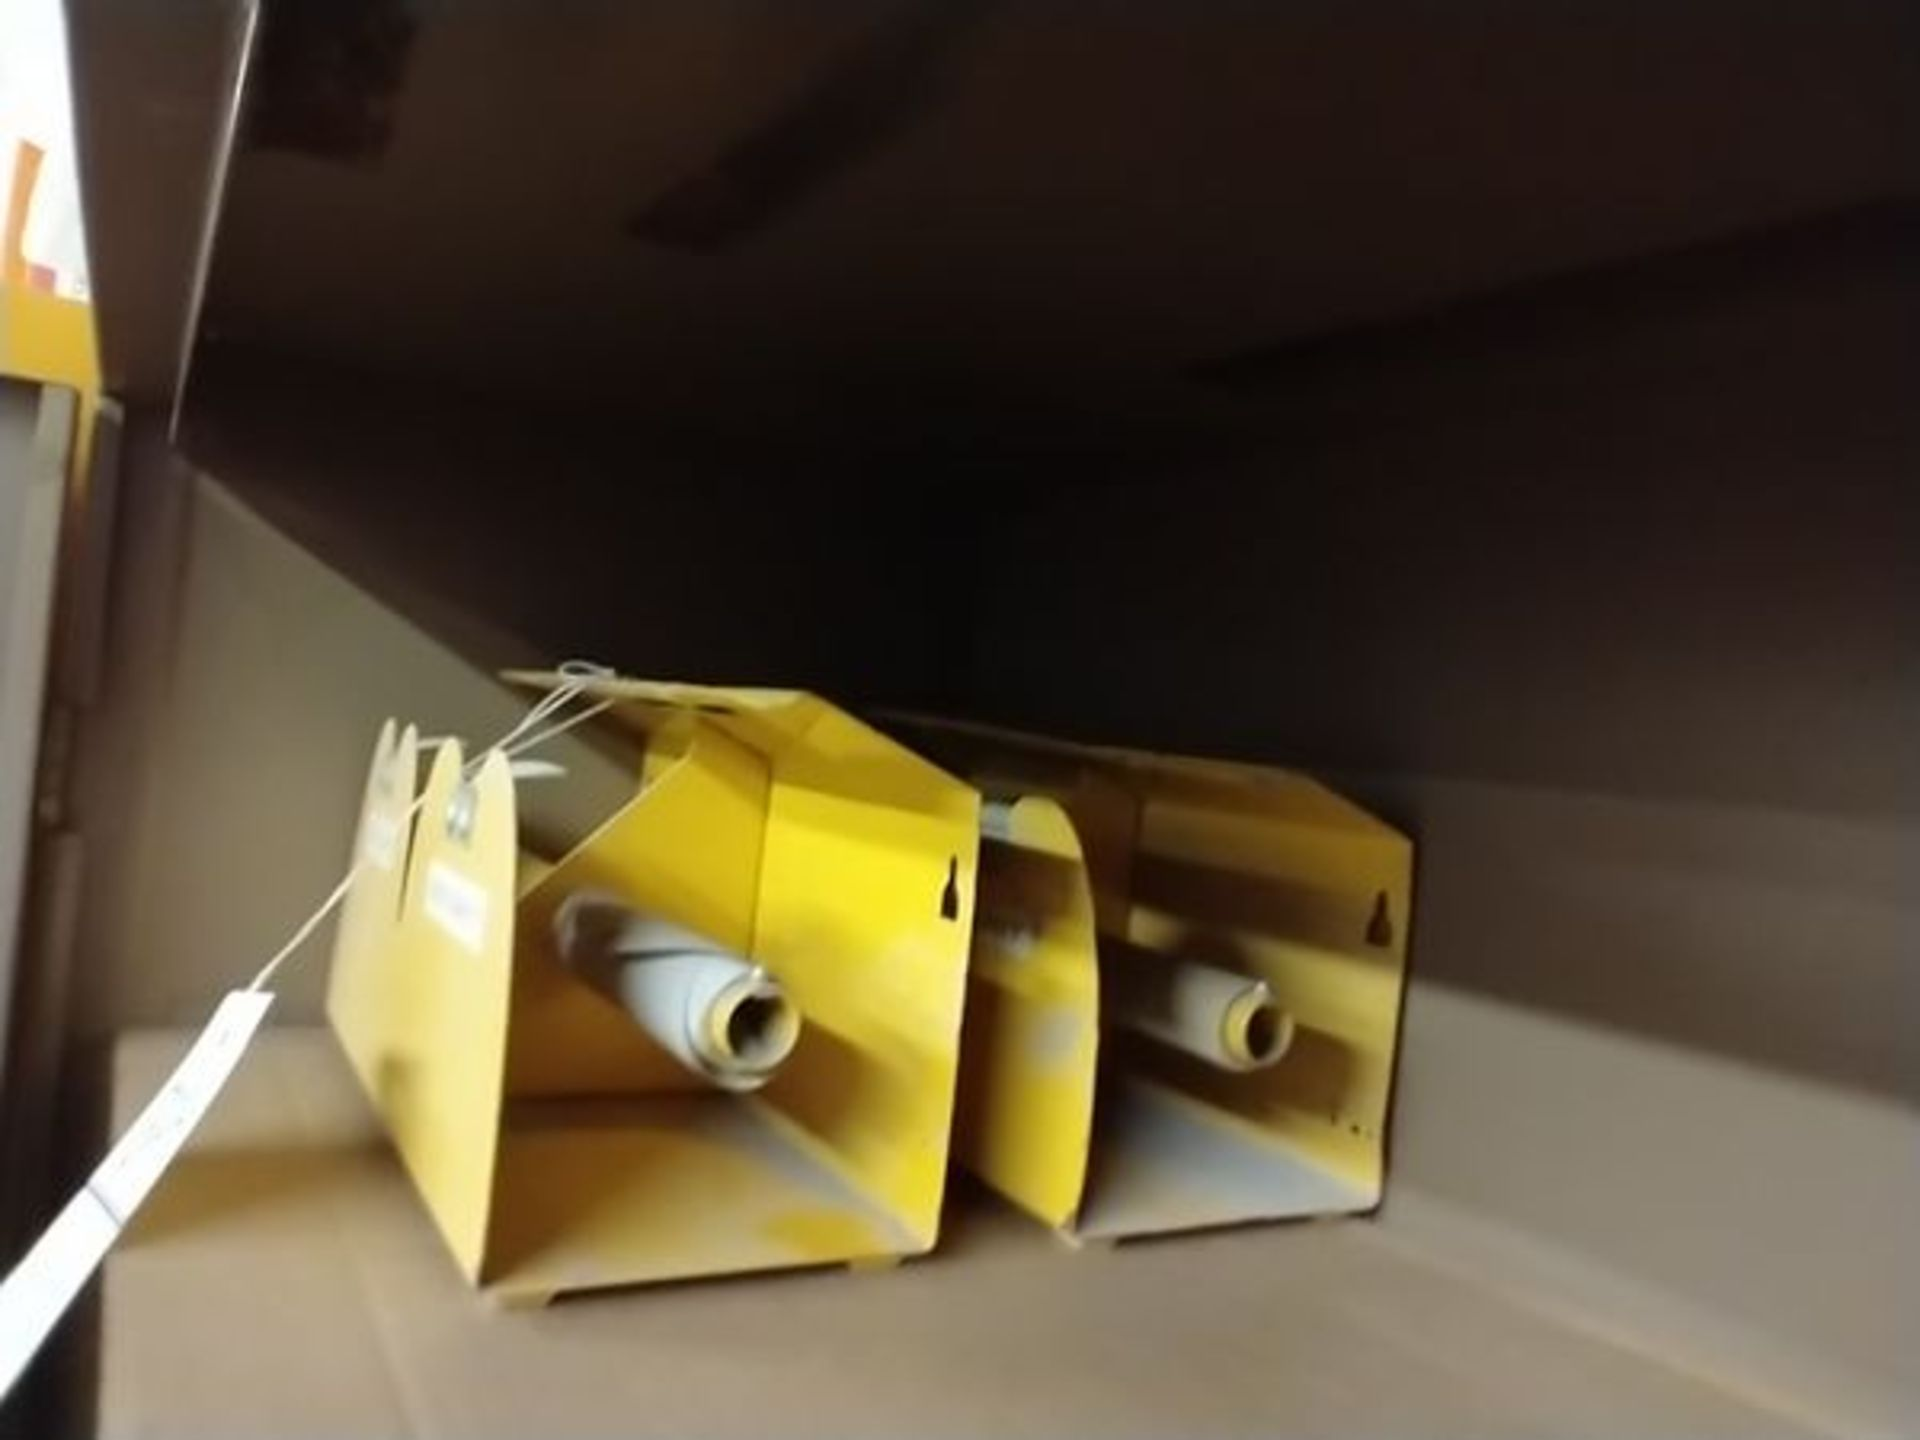 SAND PAPER DISC DISPENSERS - Image 2 of 2